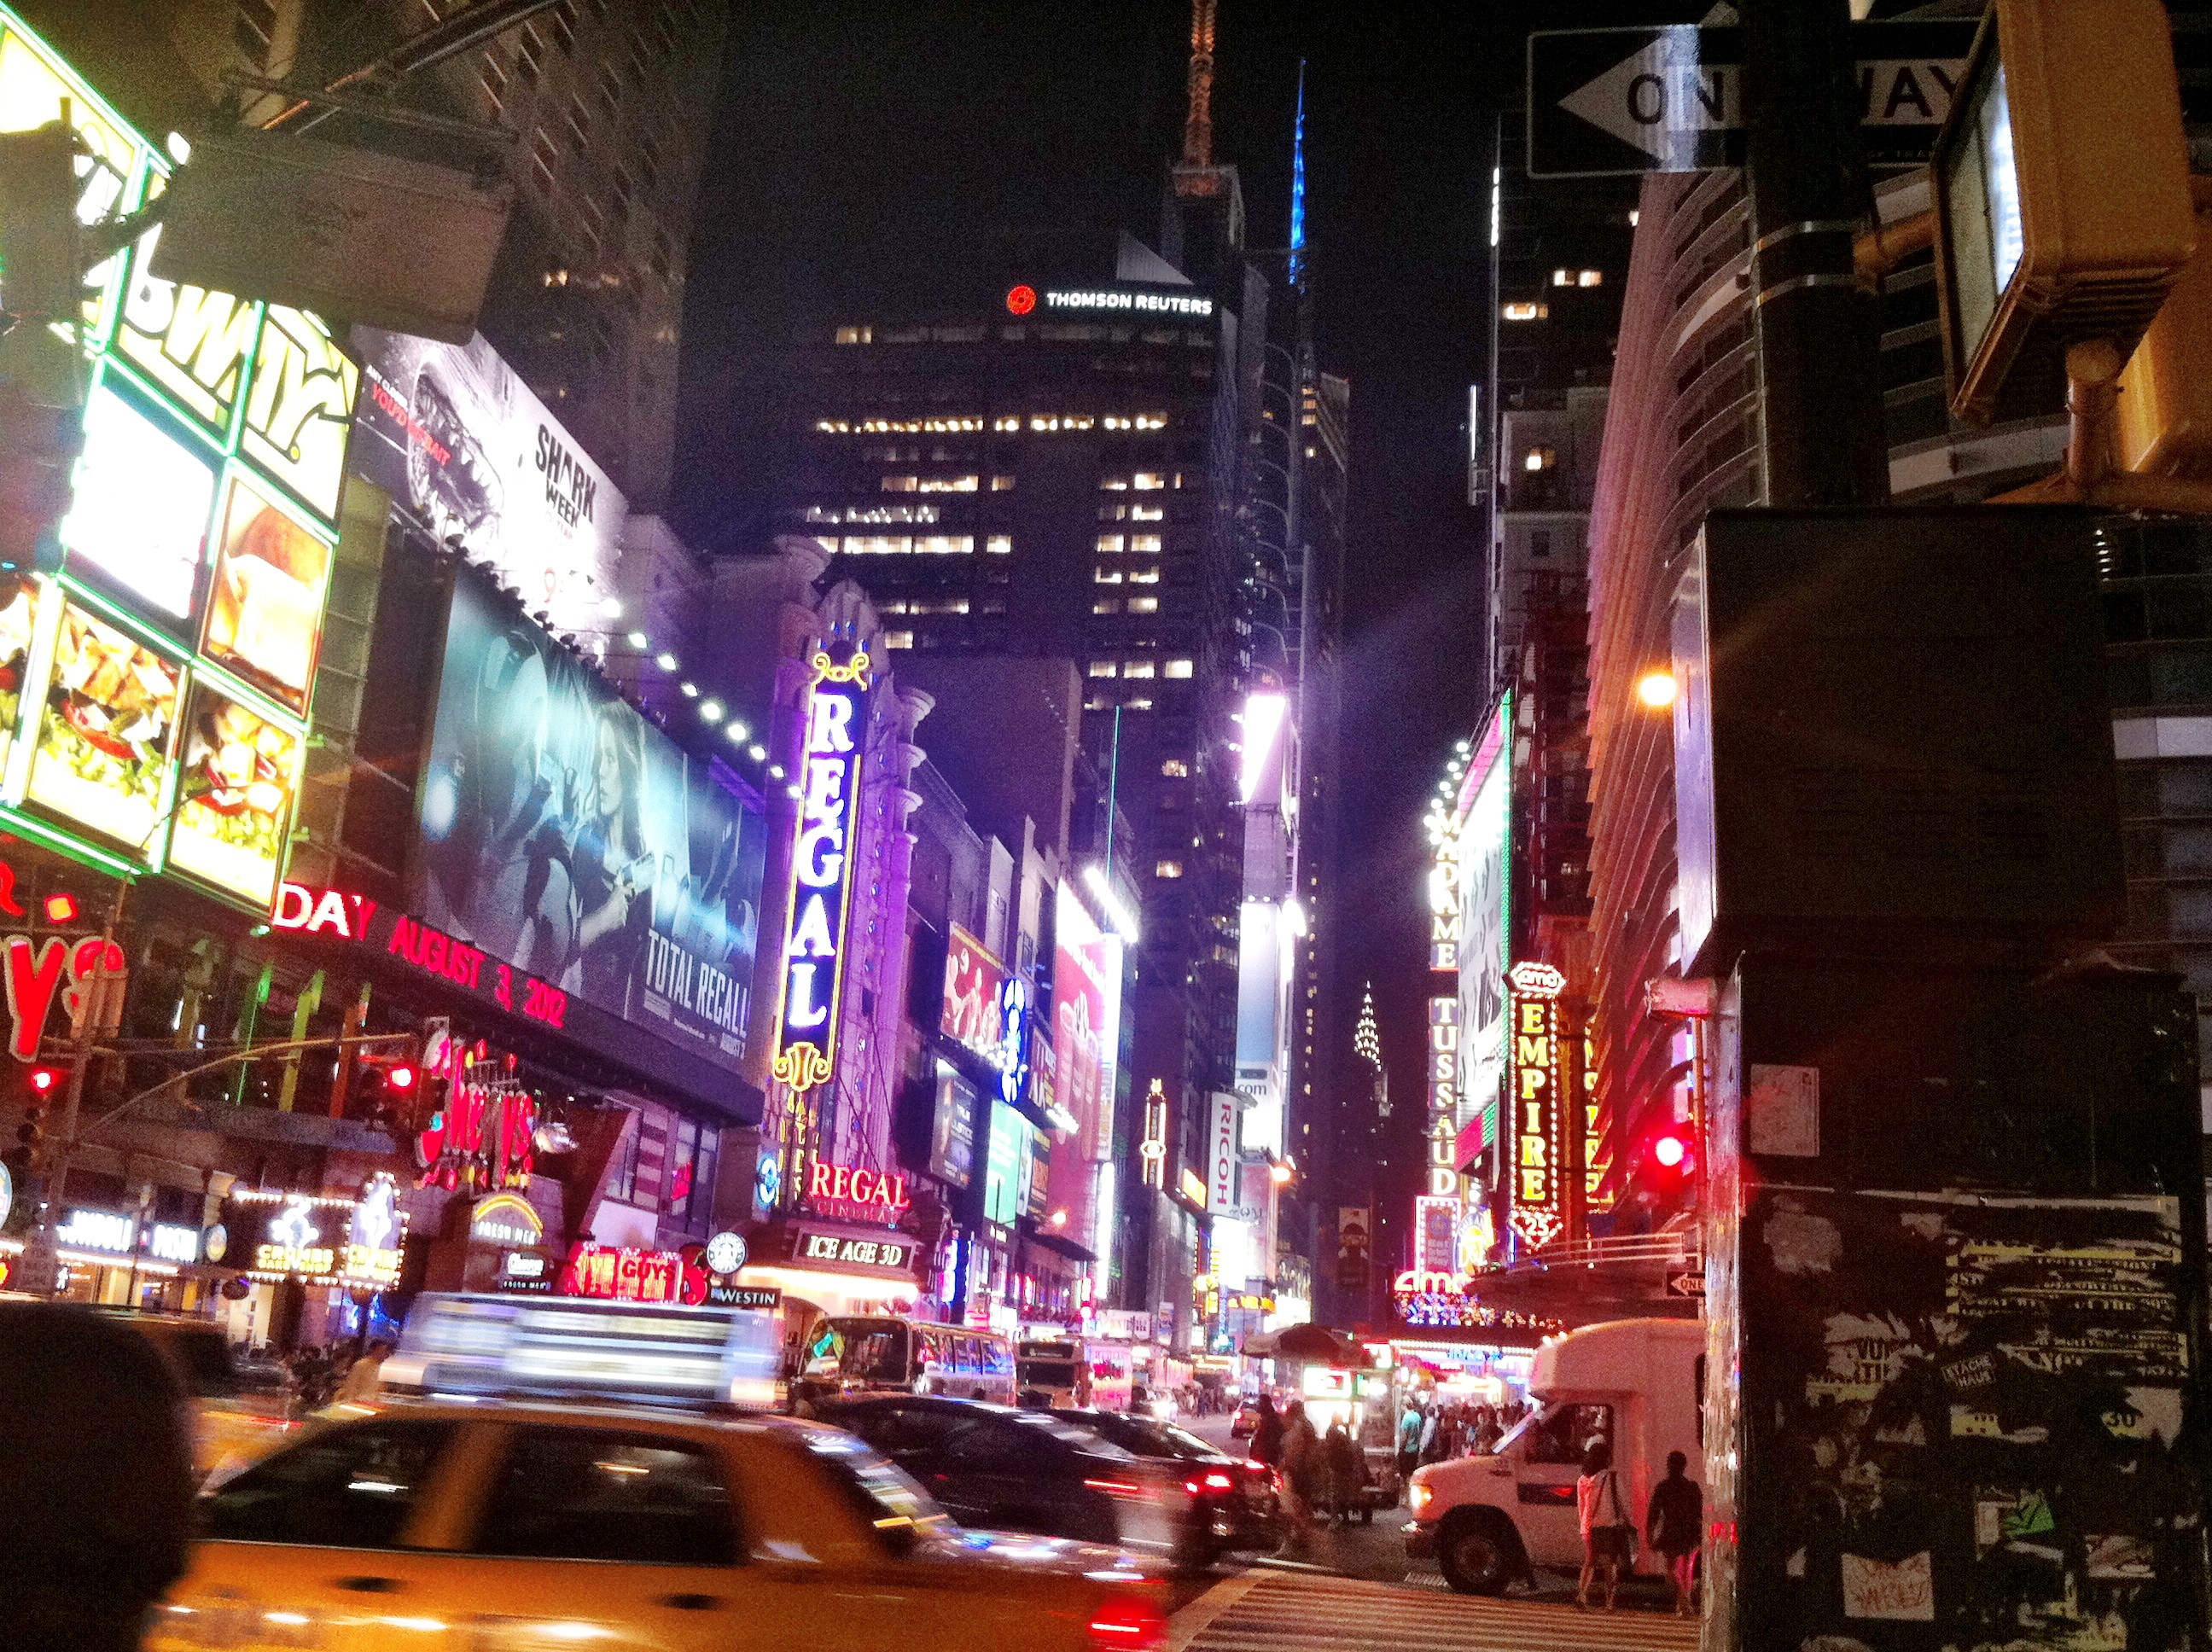 New York City travel: image of Times Square area lights and action at midnight